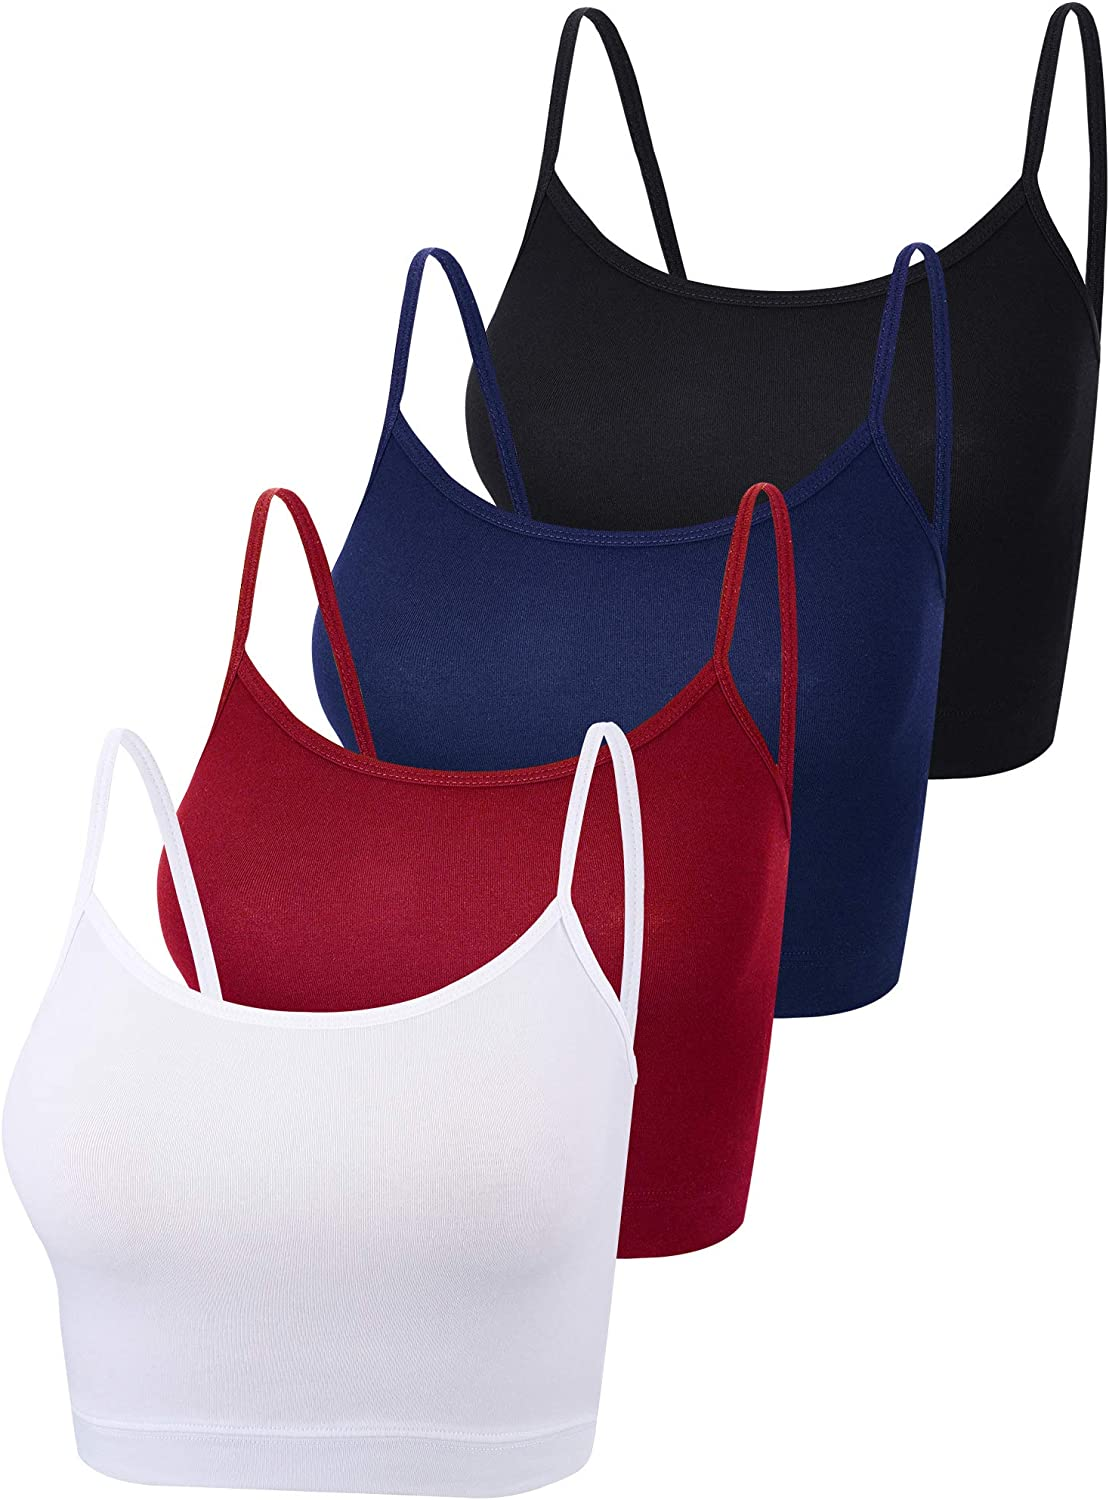 4 Pieces Basic Crop Tank Tops Sleeveless Racerback Crop Sport Cotton Top for Women